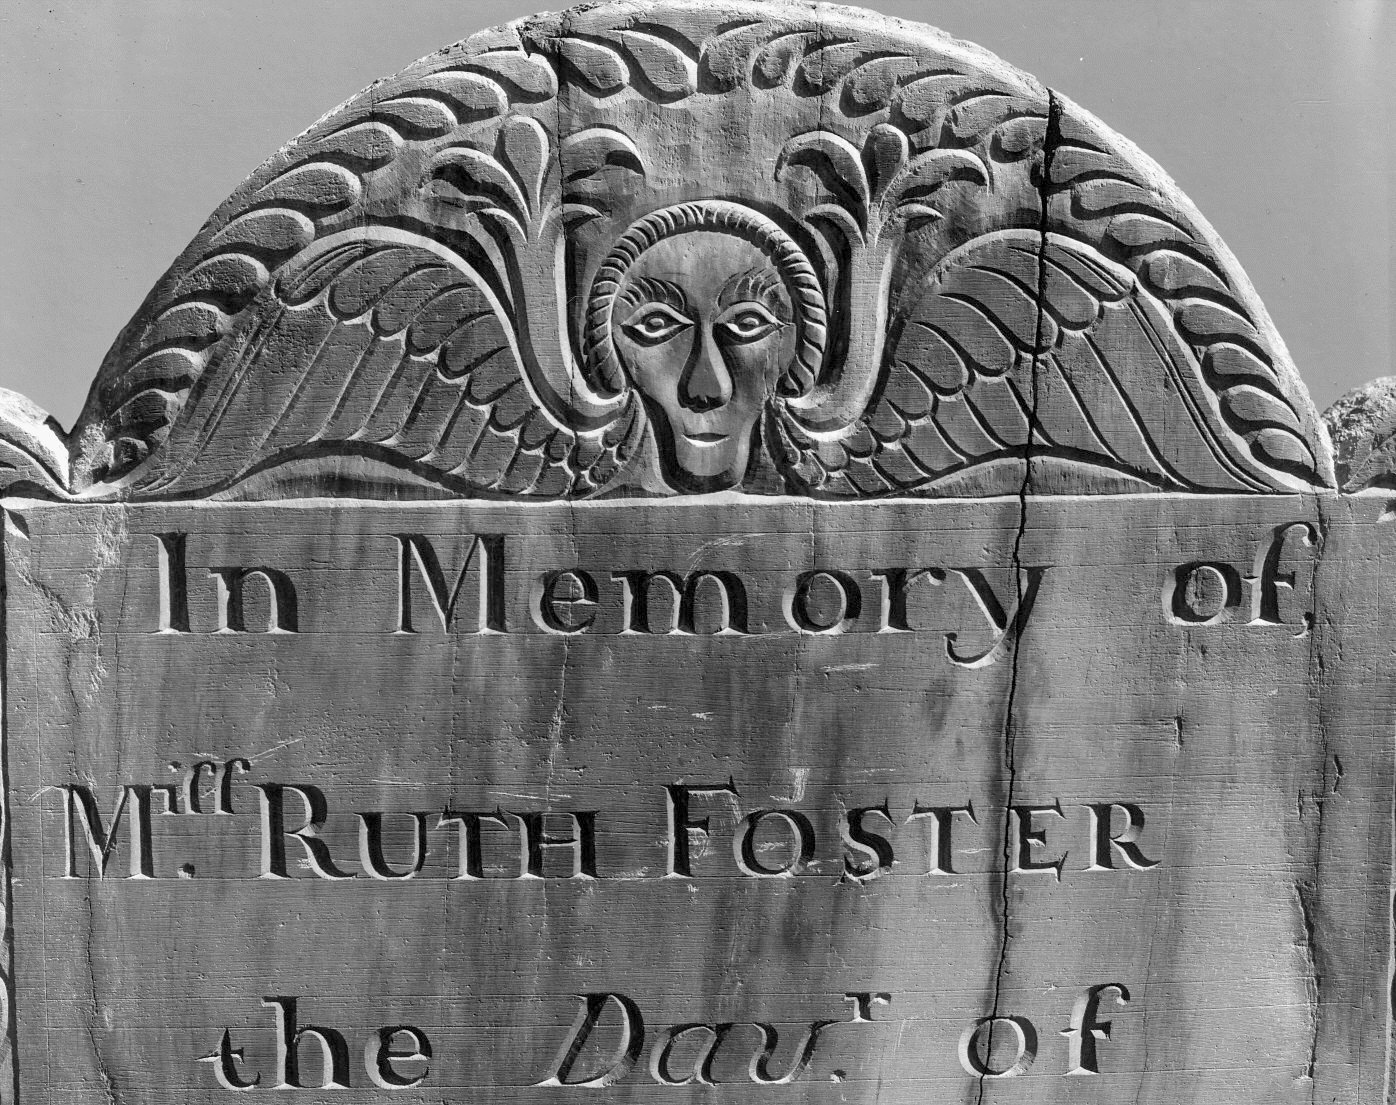 Foster, Ruth